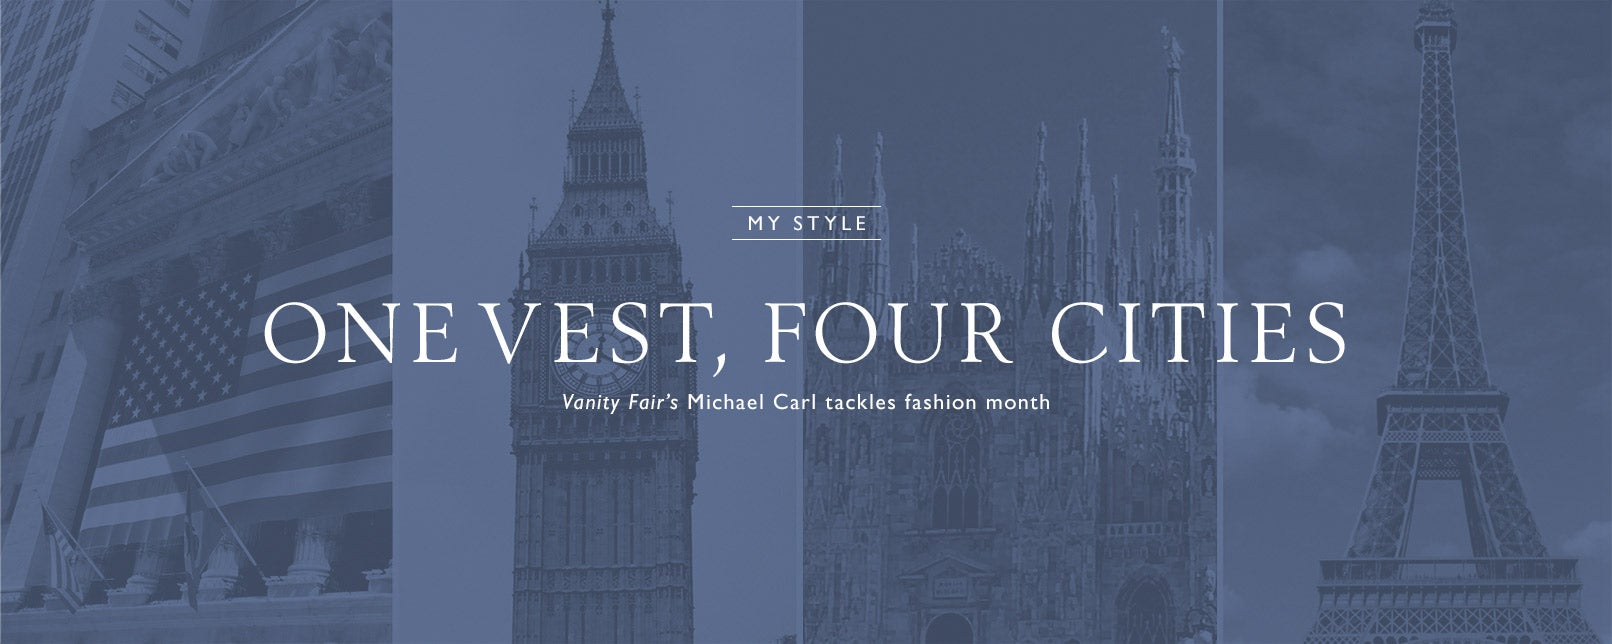 My Style: One vest four cities